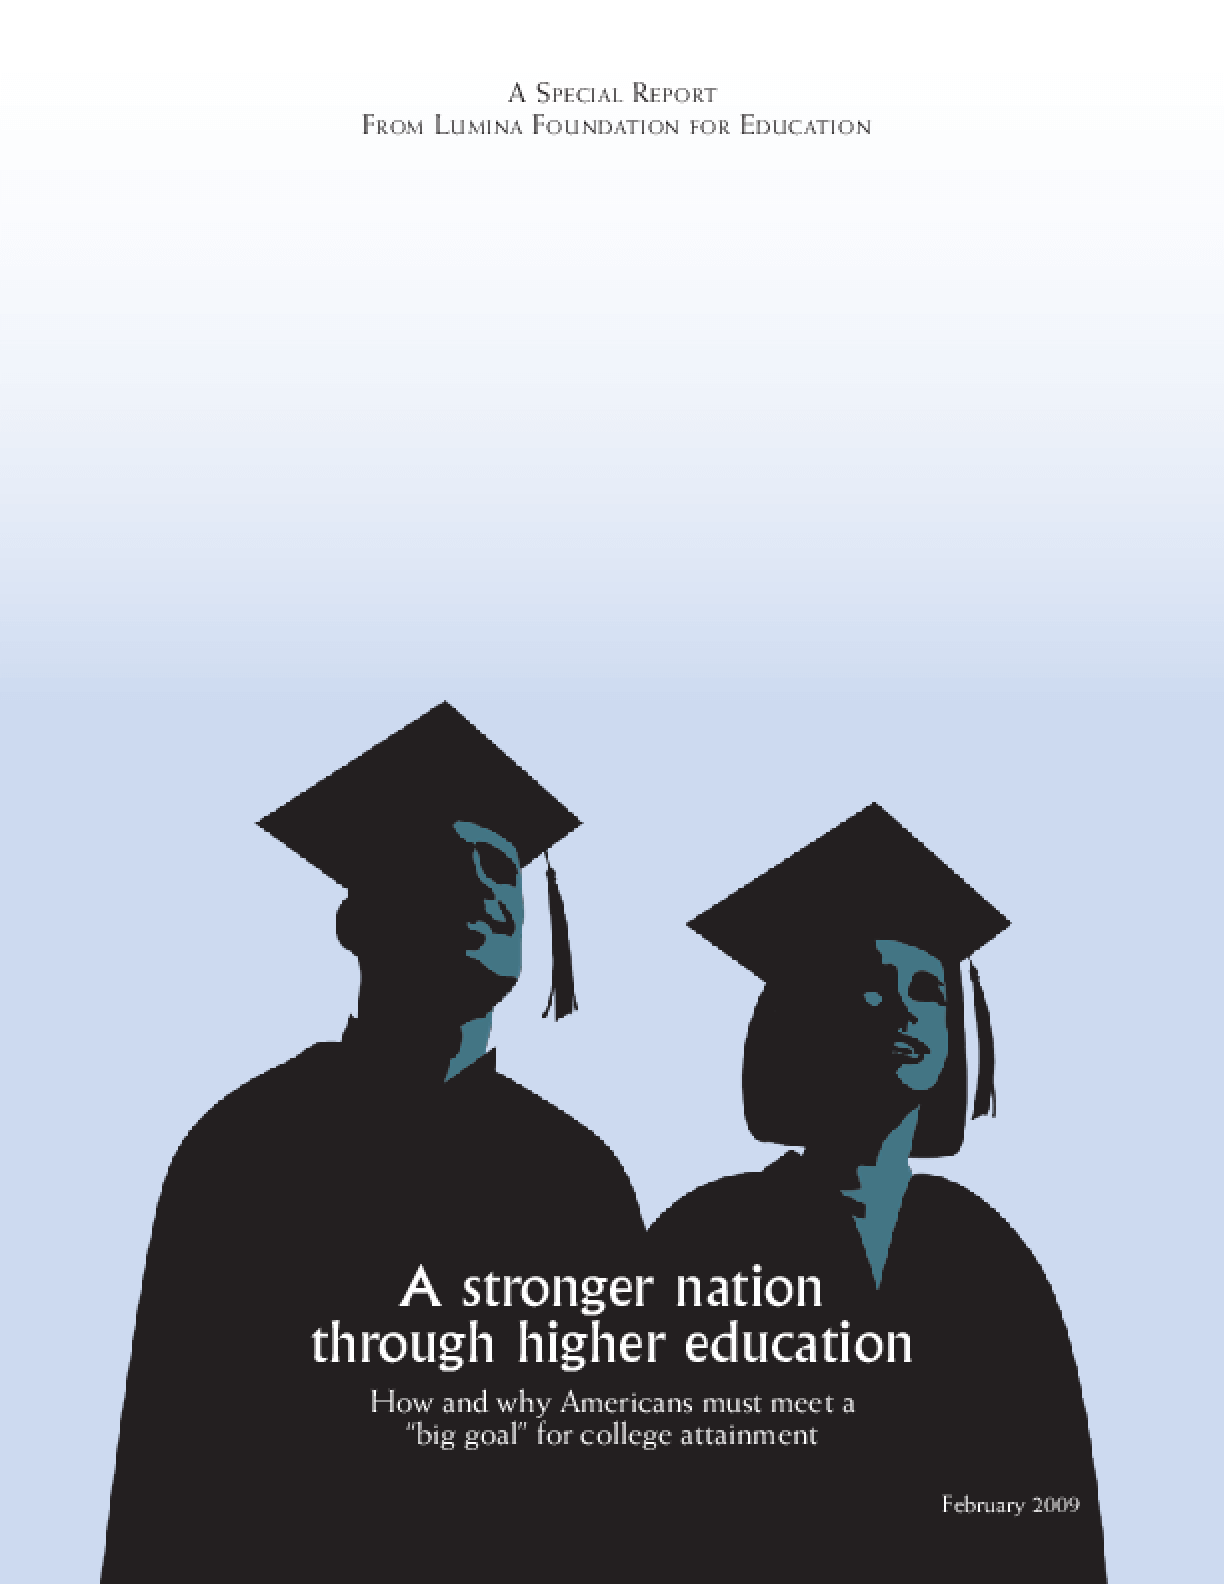 A Stronger Nation Through Higher Education